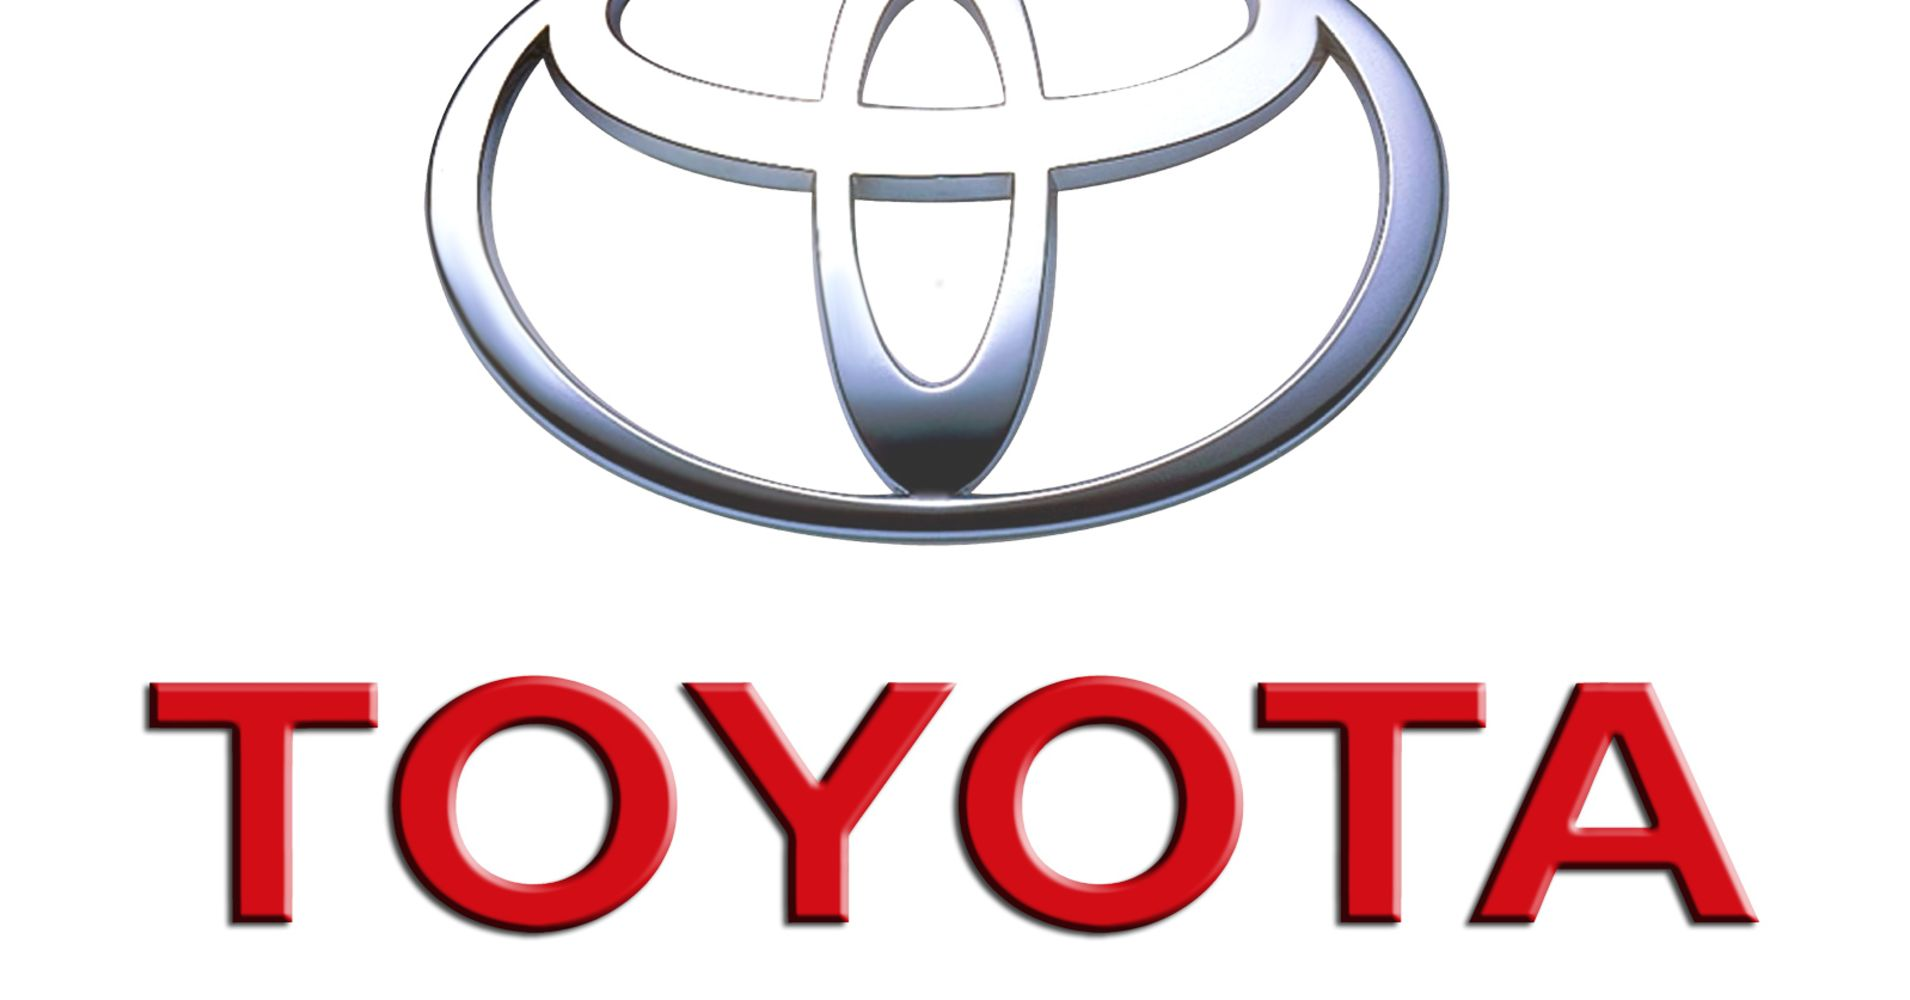 Toyota Logo - 13 famous logos with hidden messages